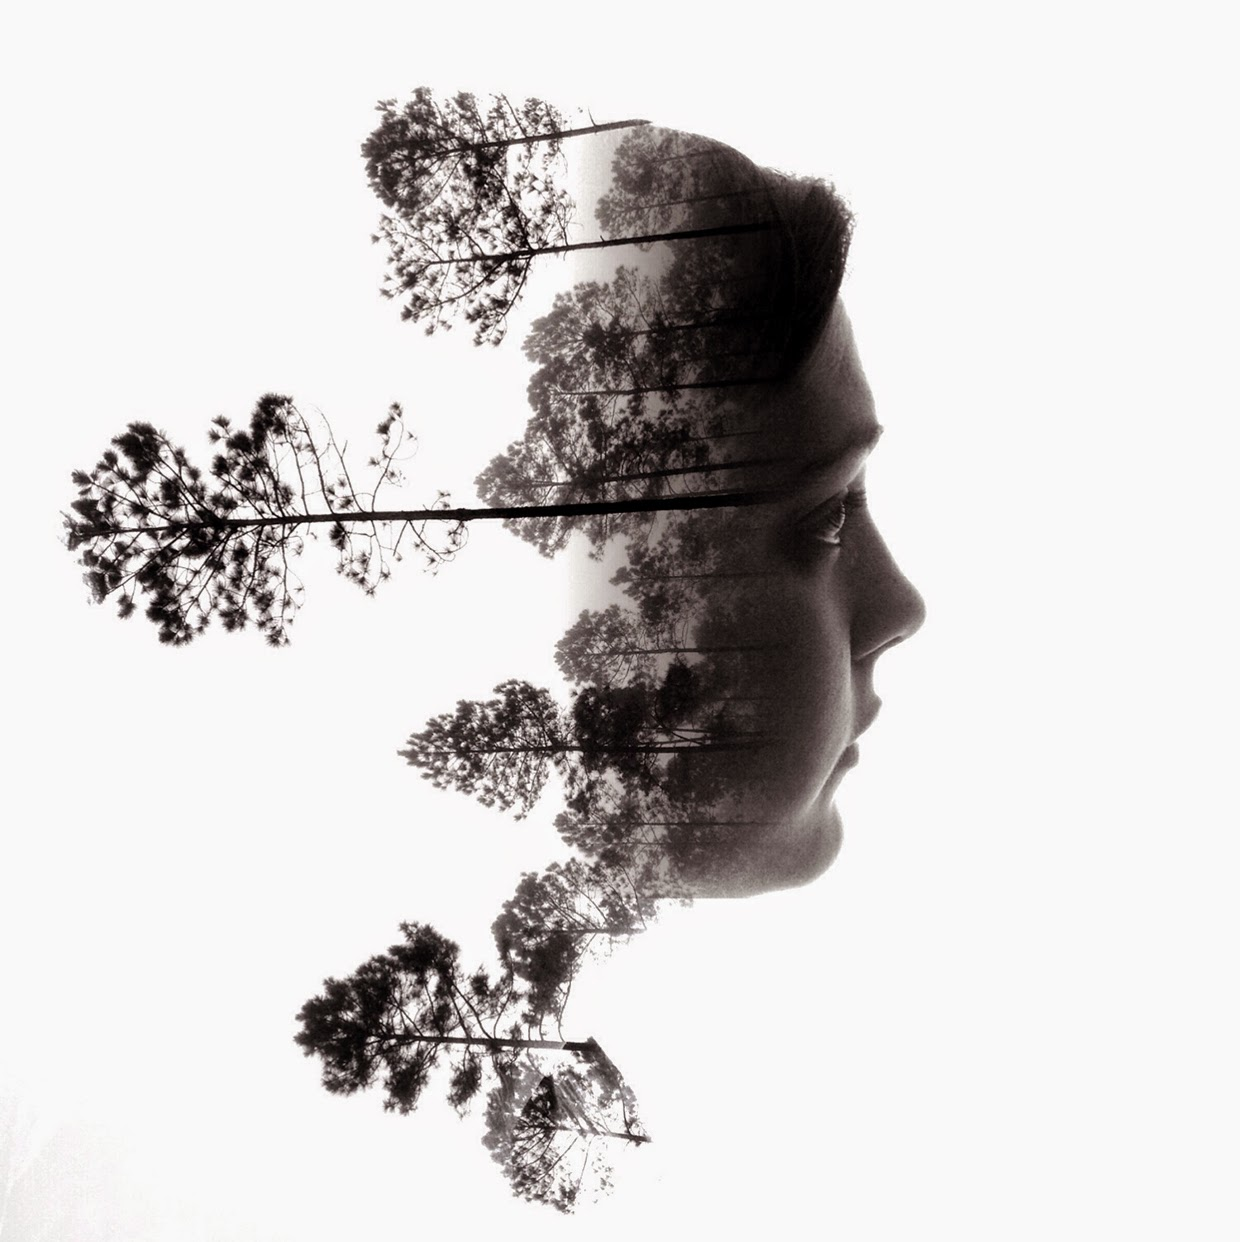 09-Brandon-Kidwell-Stories-in-Double-Exposure-Portrait-Photographs-www-designstack-co